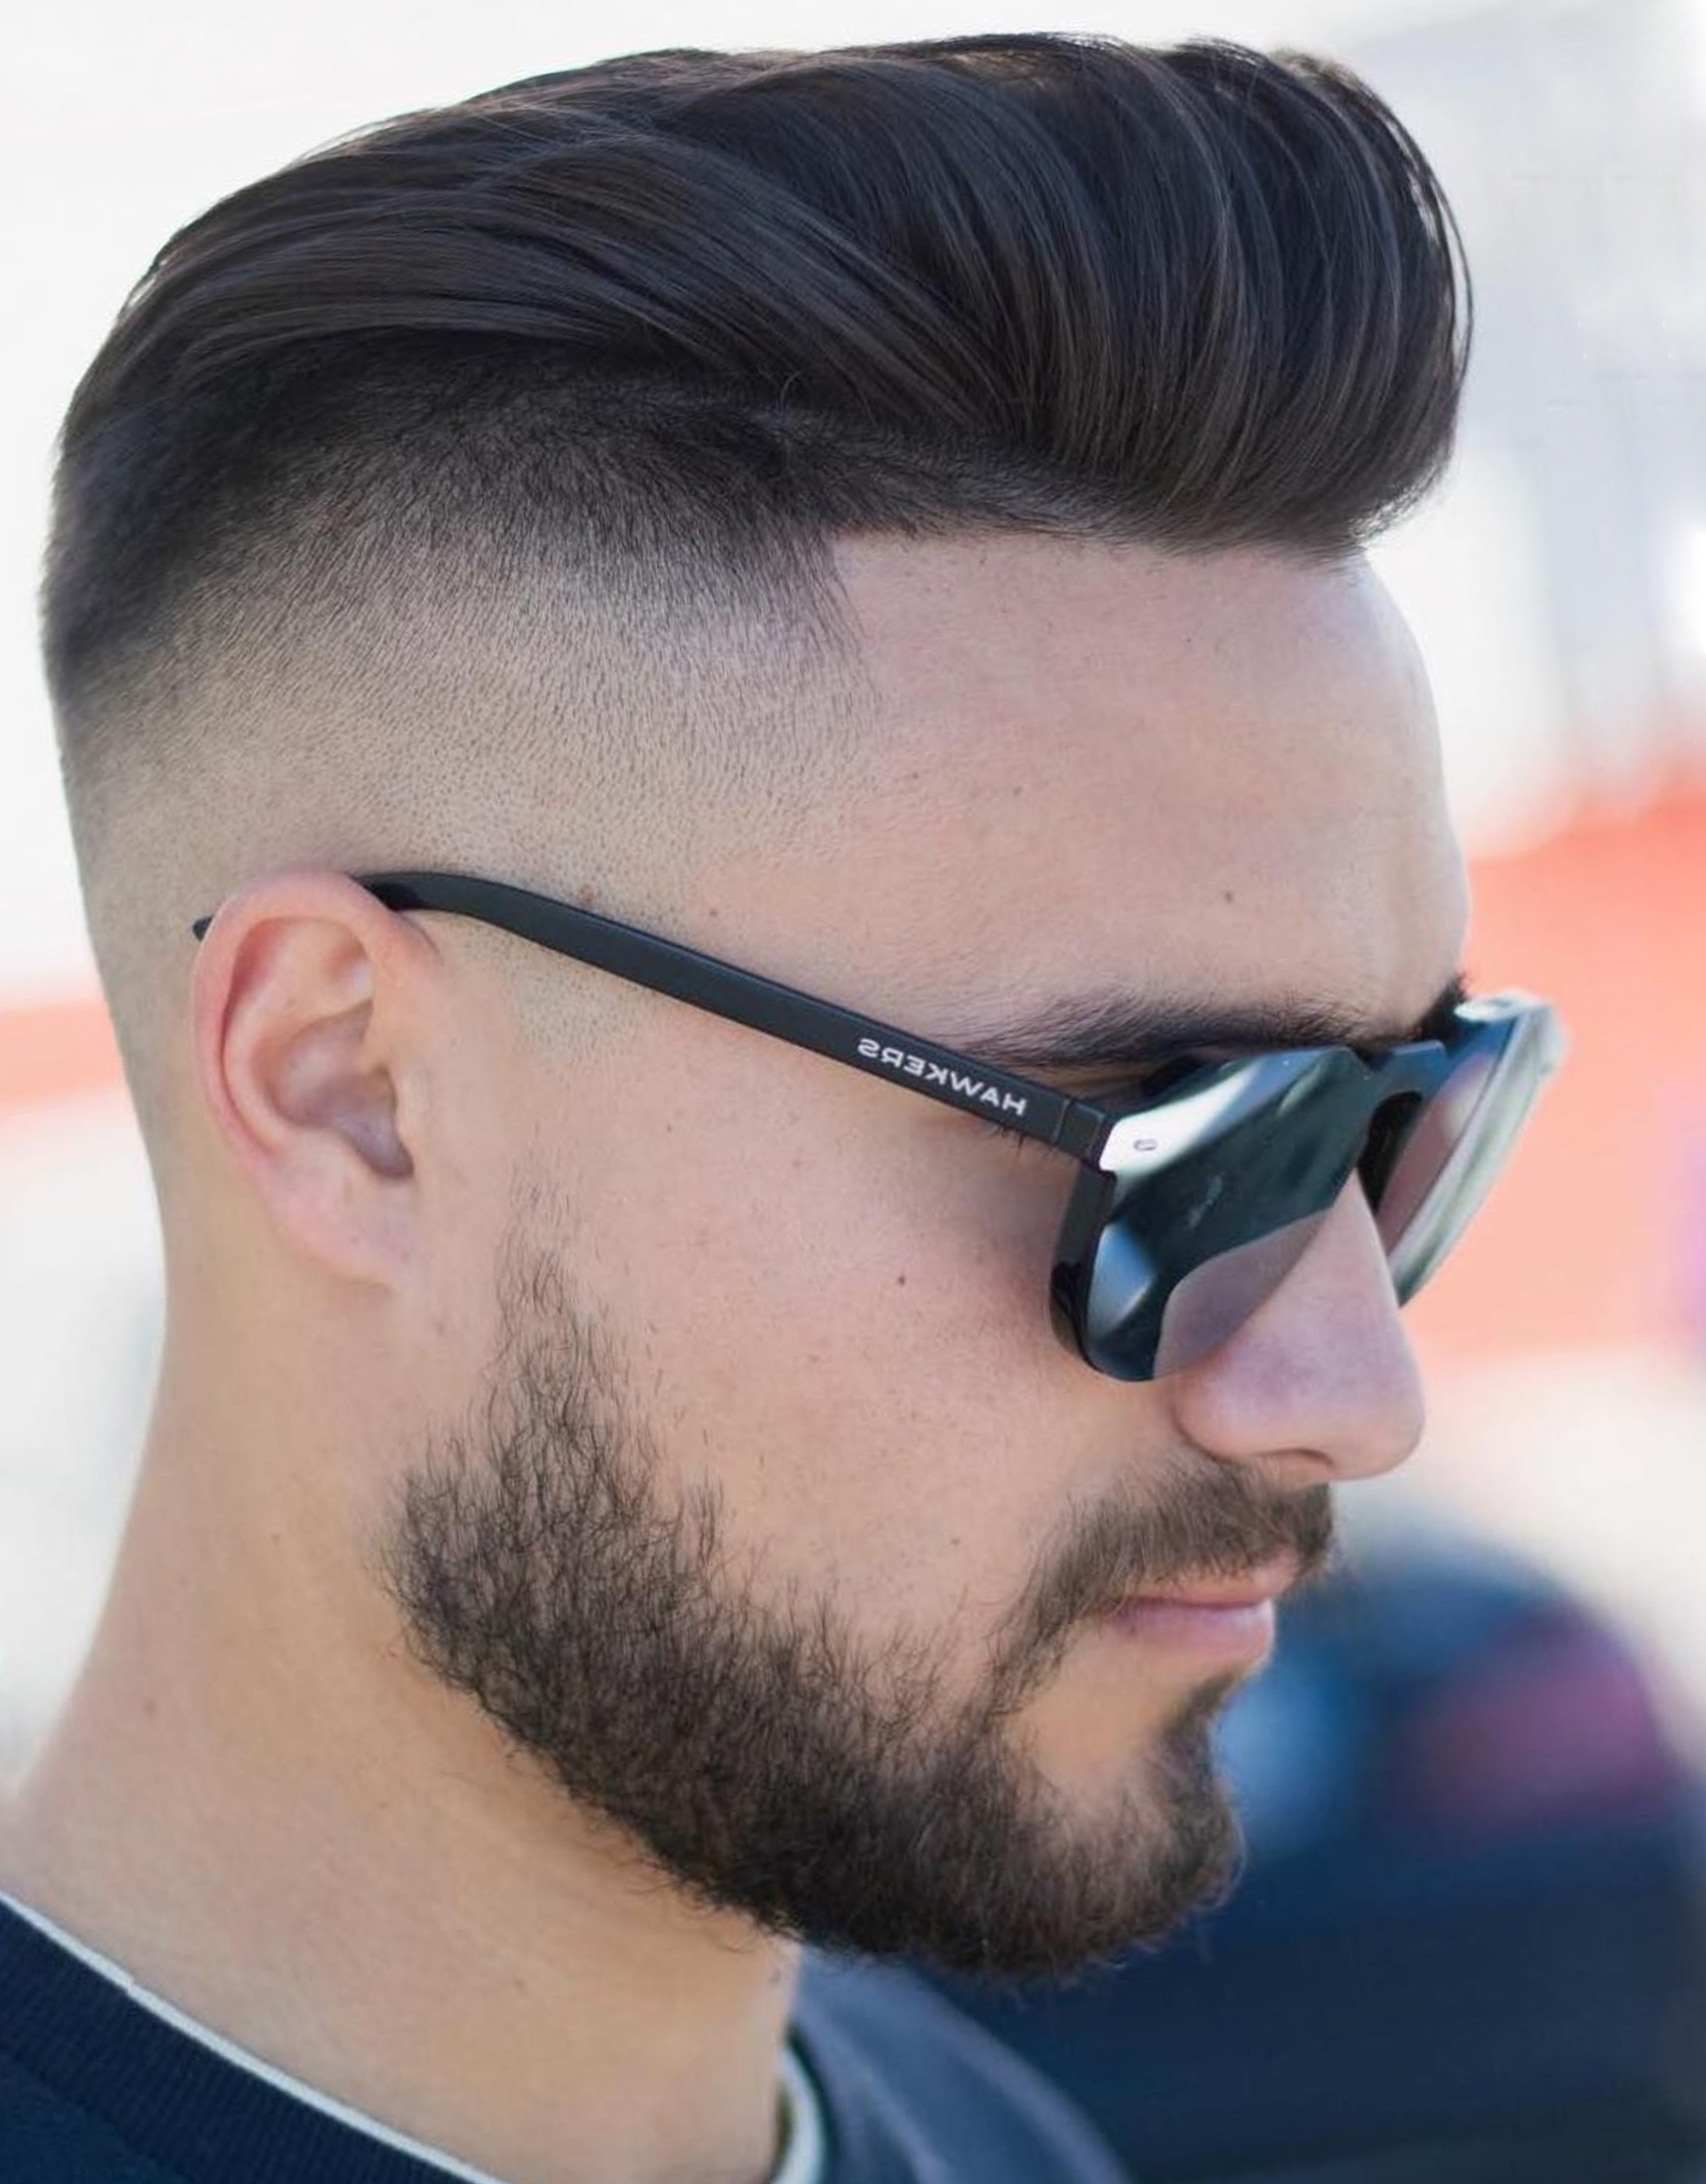 A short beard for men with an undercut.